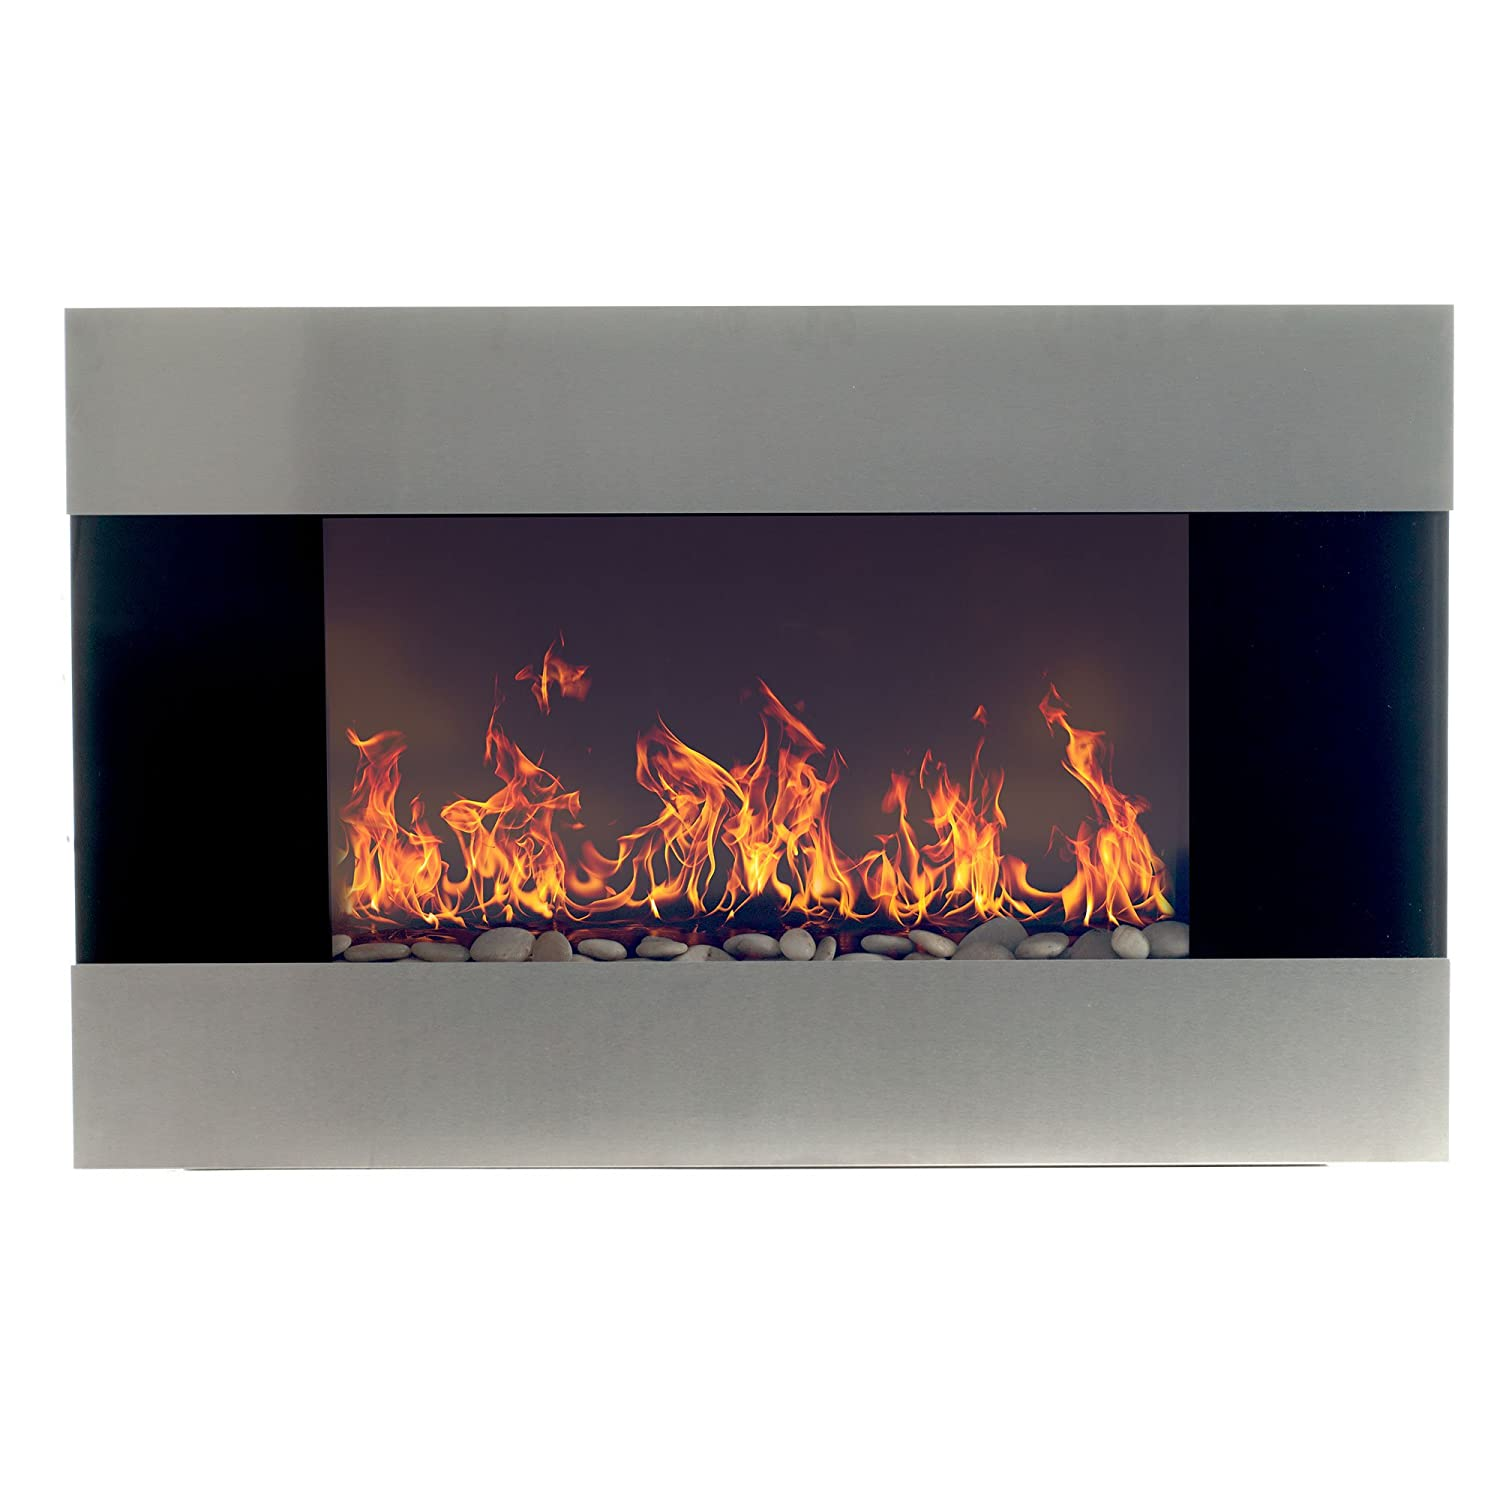 ideas sale media an house image of can on outdoor electric whole black fireplace heat